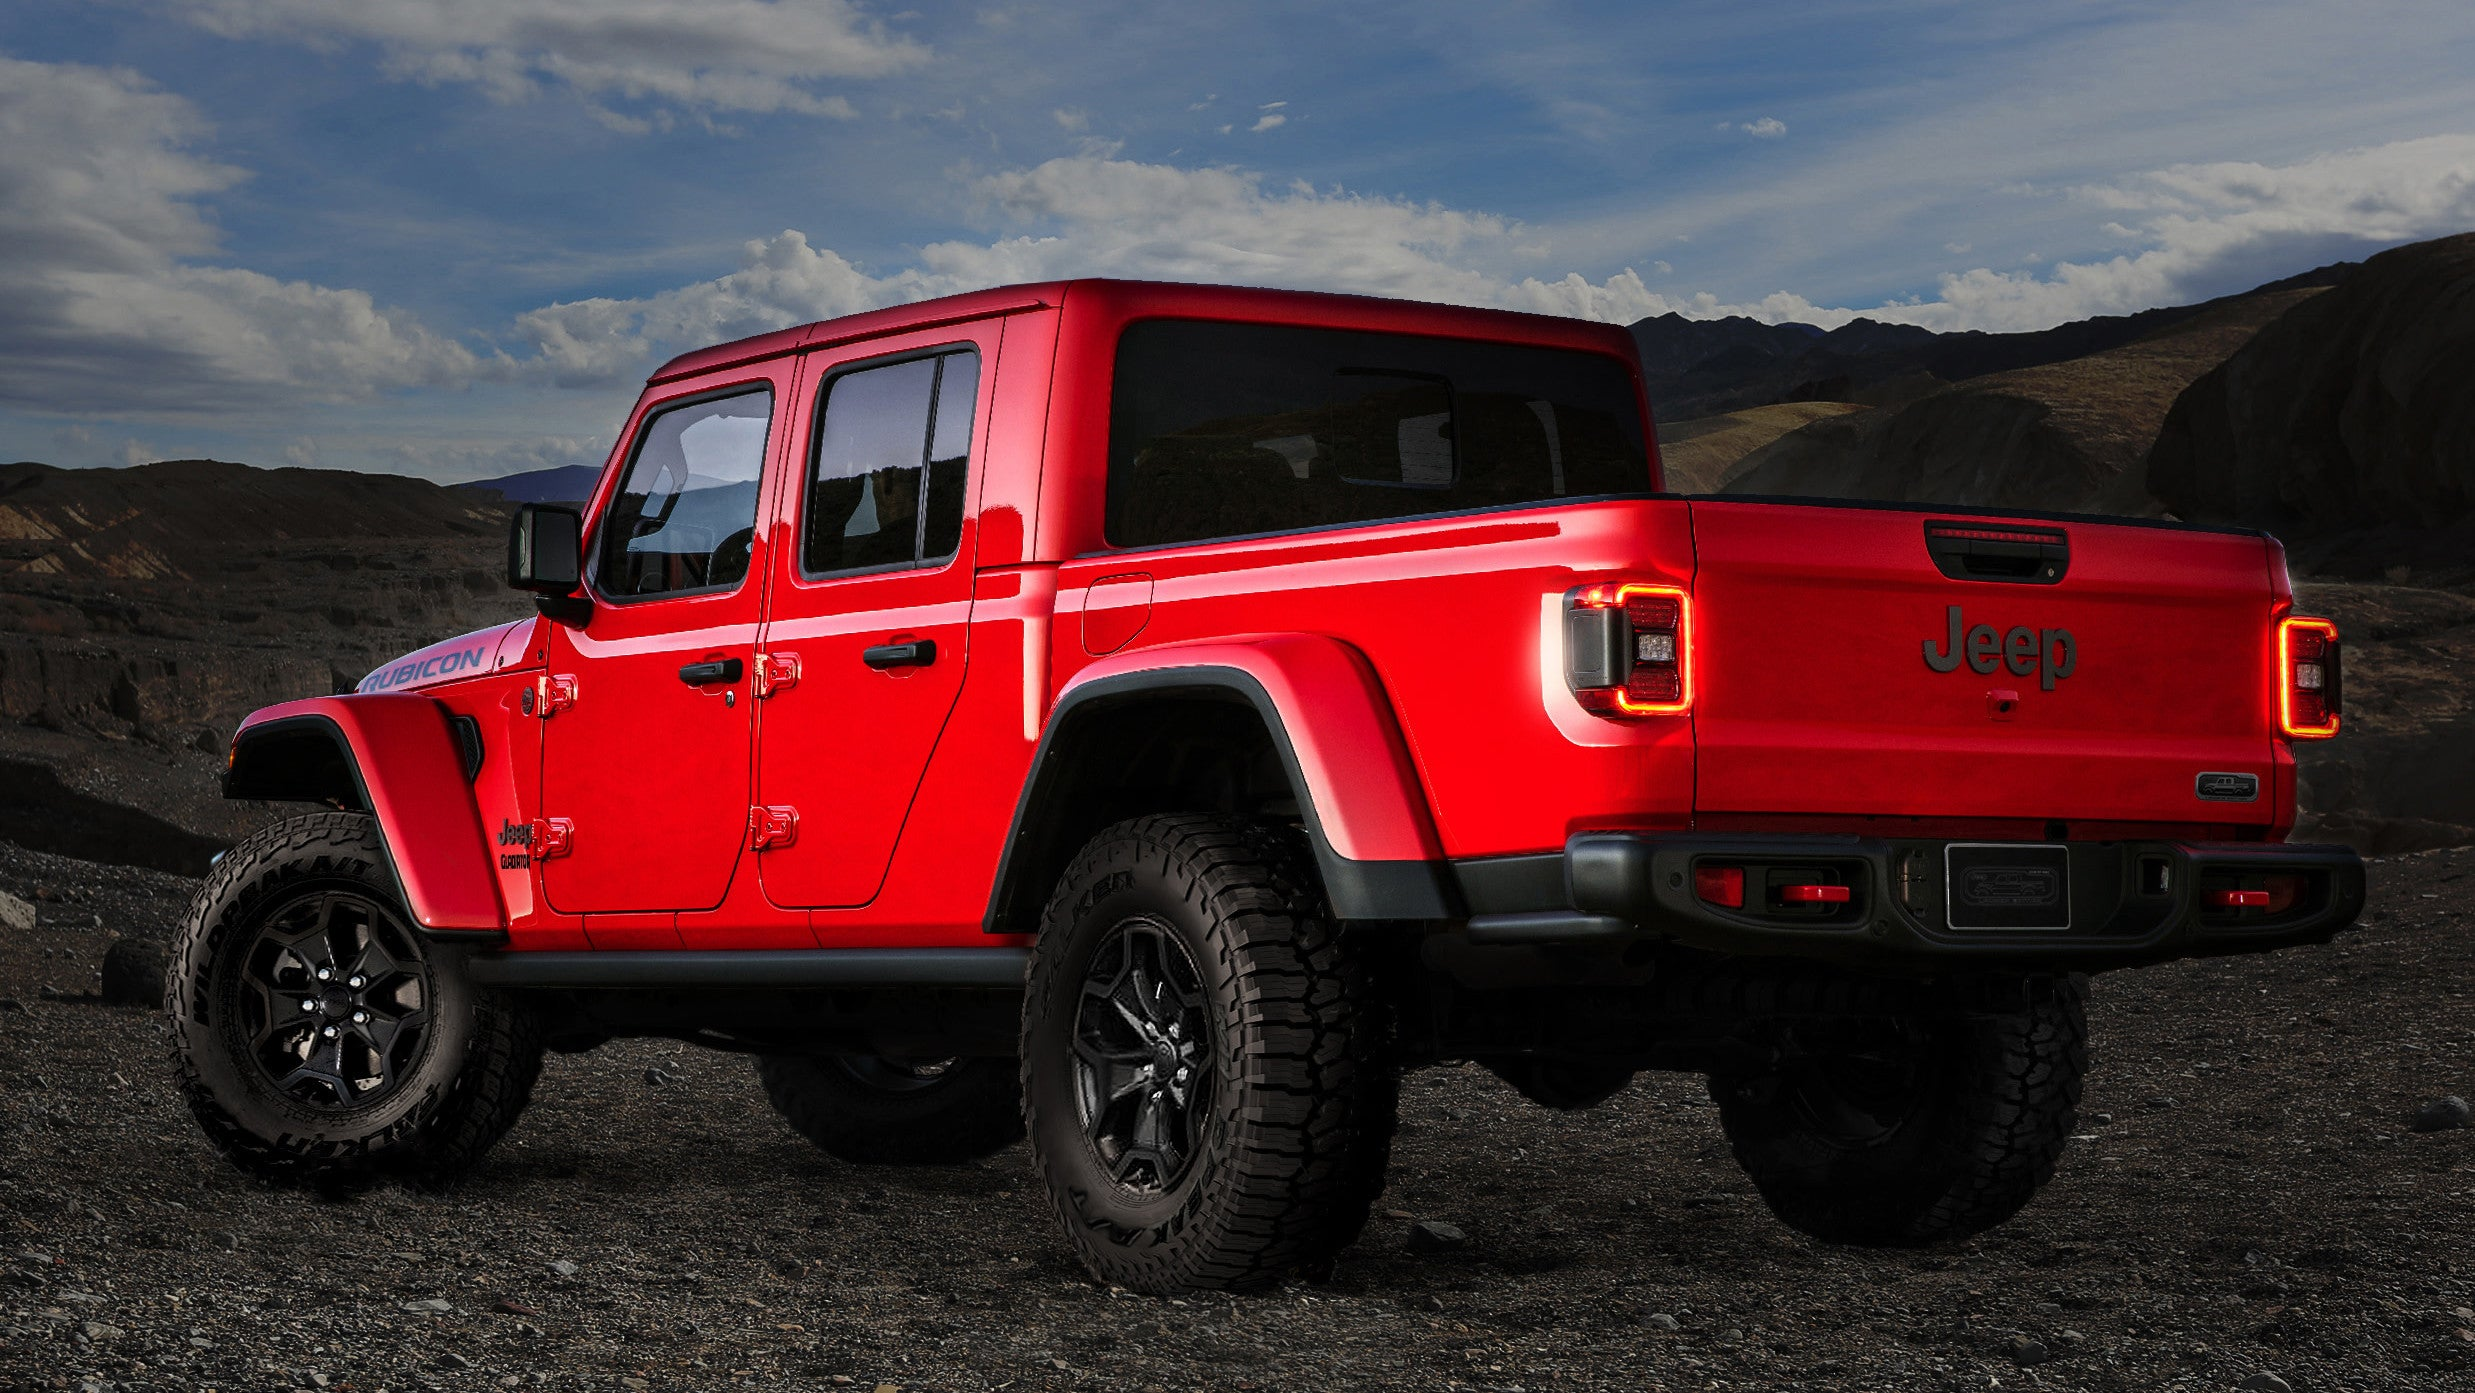 Jeep Will Electrify Its Entire Lineup By 2022, Make 'On-Road' Vehicles: Report